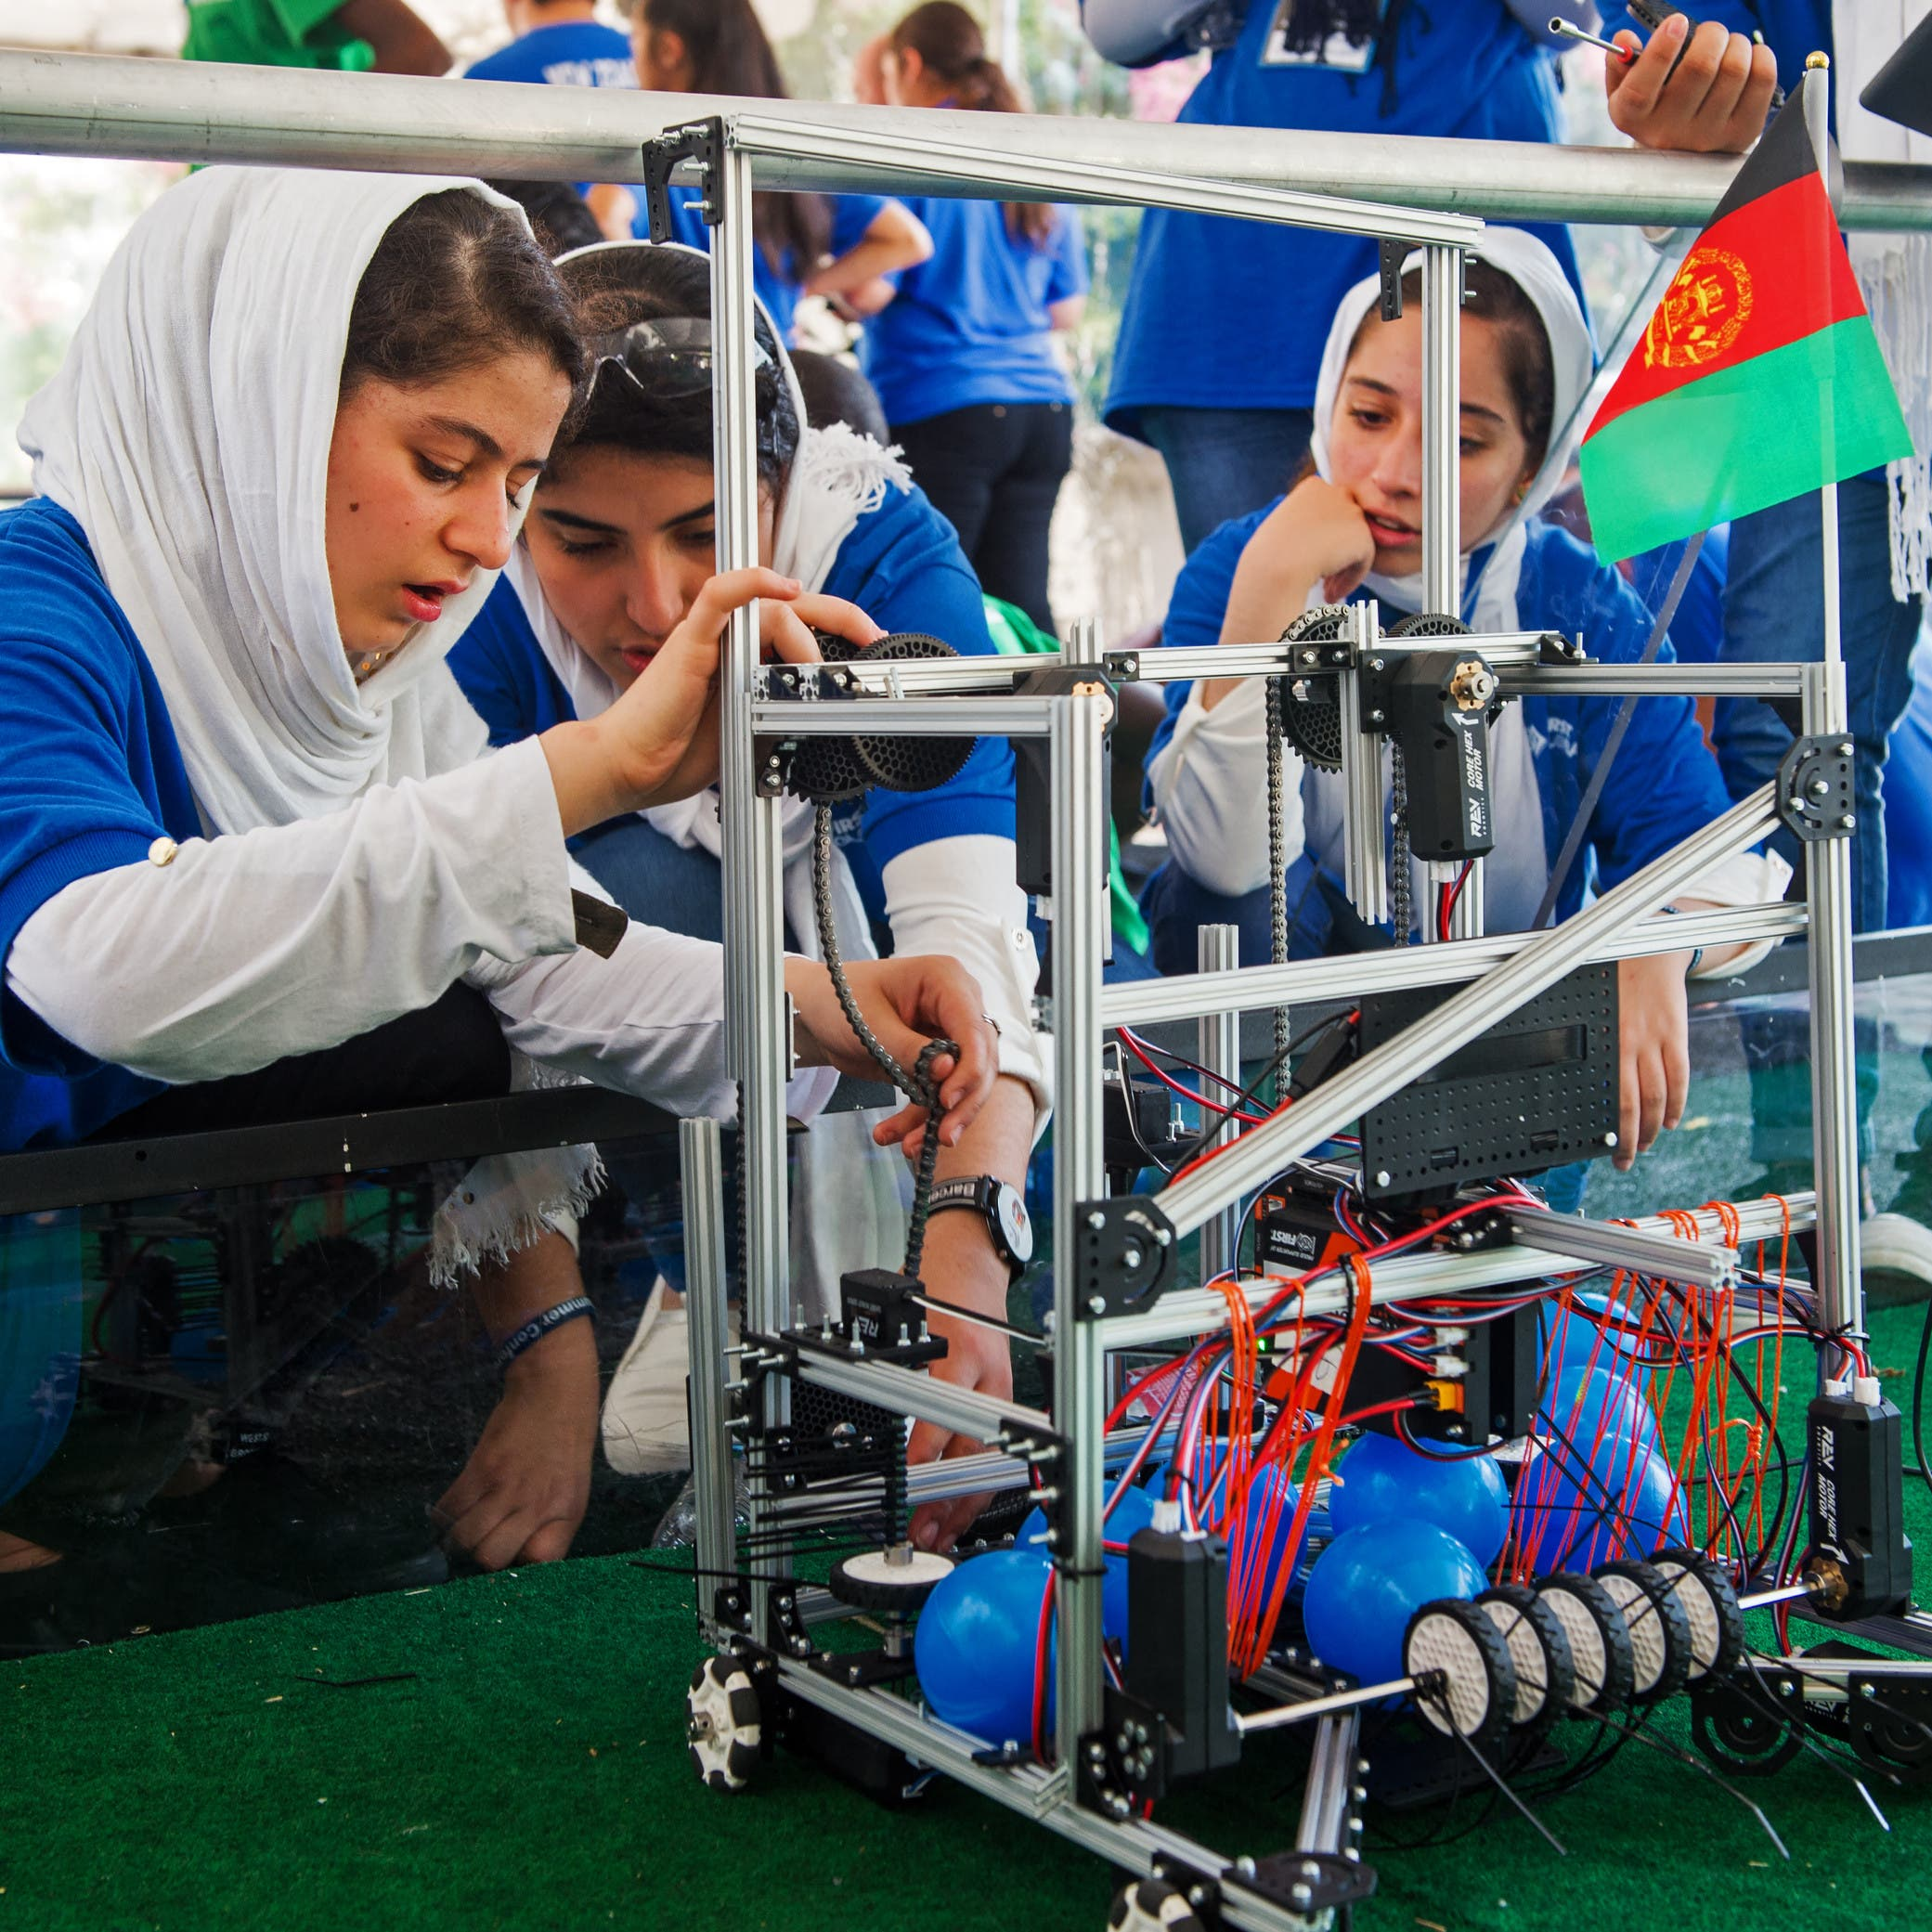 Afghanistan's girls robotics team evacuated from Kabul after Taliban takeover